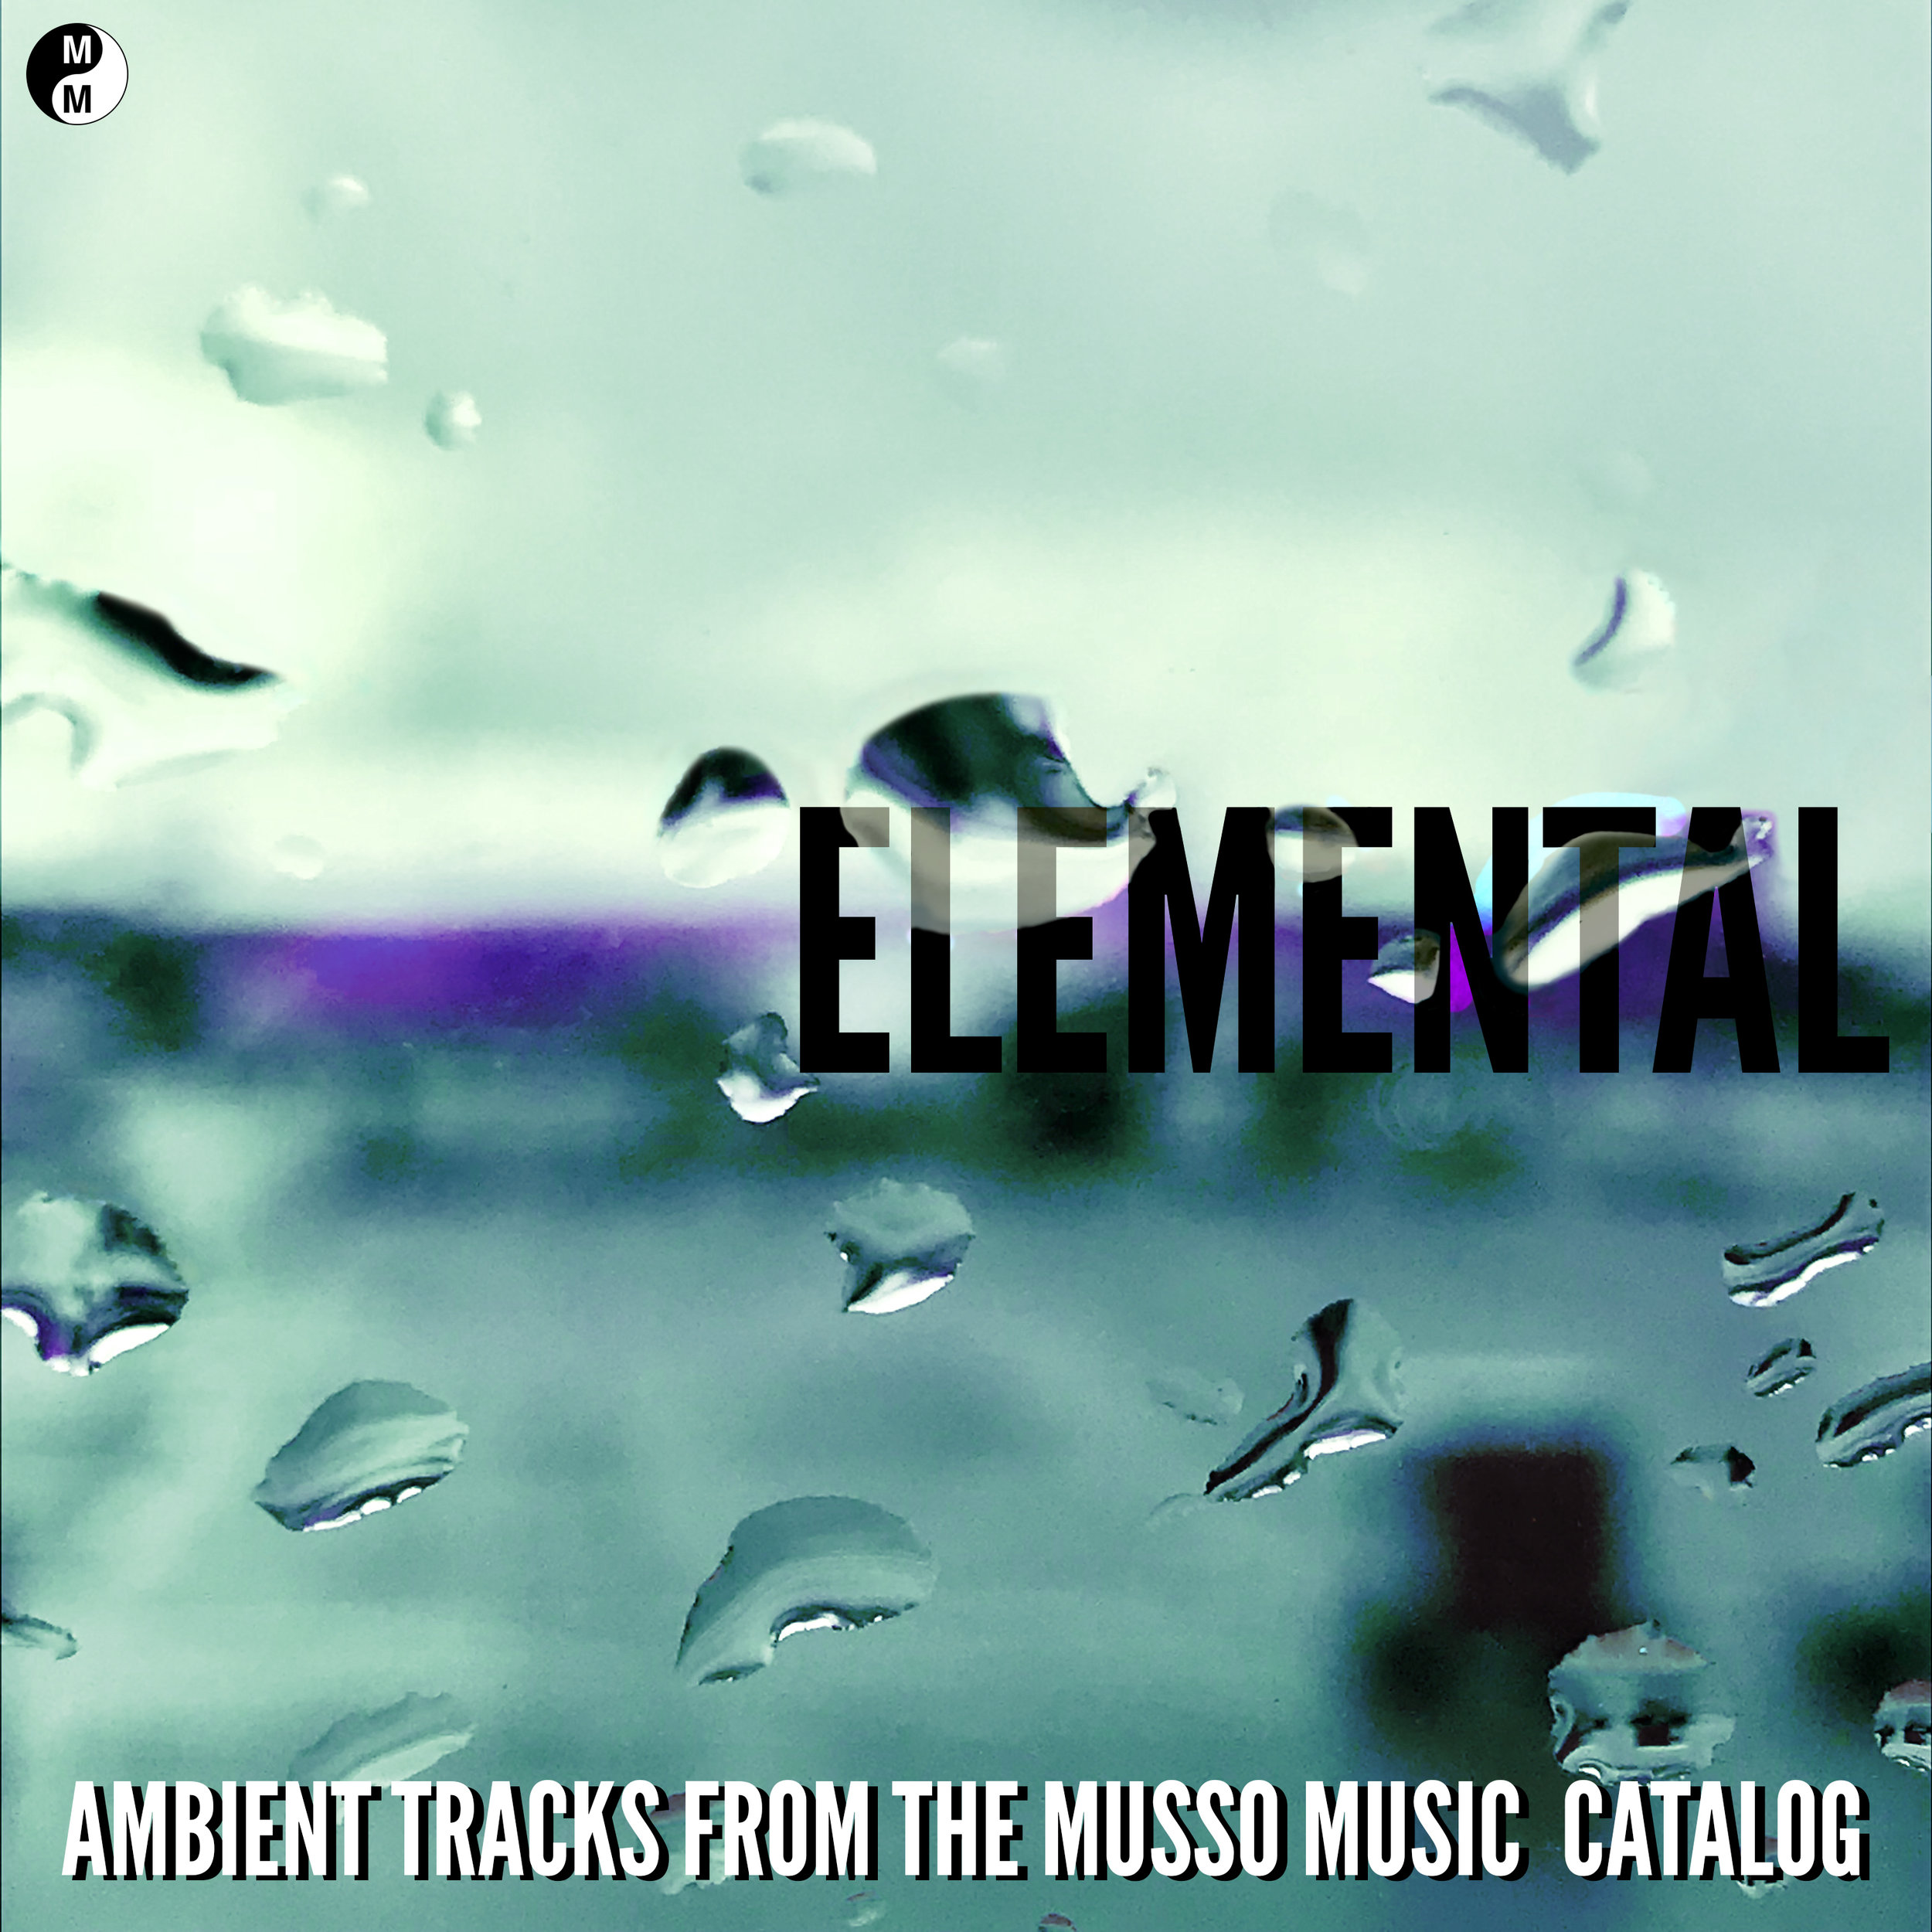 Elemental – Ambient Tracks from the Musso Music Catalog